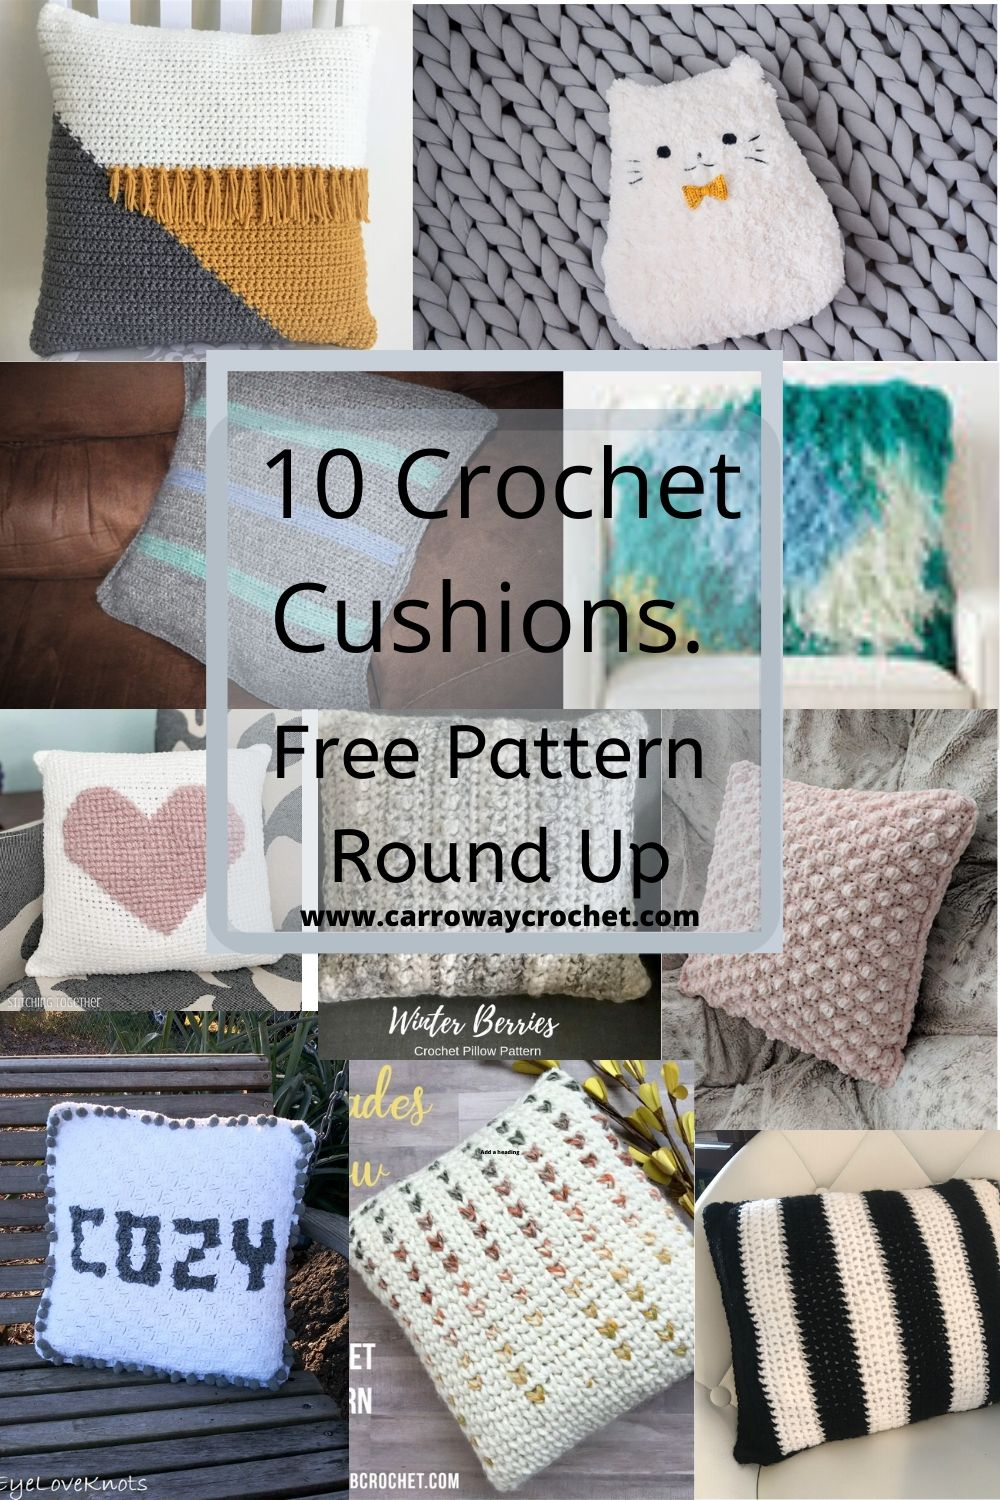 Ten Crochet Cushions A Free Pattern Round Up Carroway Crochet Ten Crochet Cushions Free Pattern Round Up Beautiful Home Decor Cushions And Pillows Use These Free Patterns To Brighten Your Home